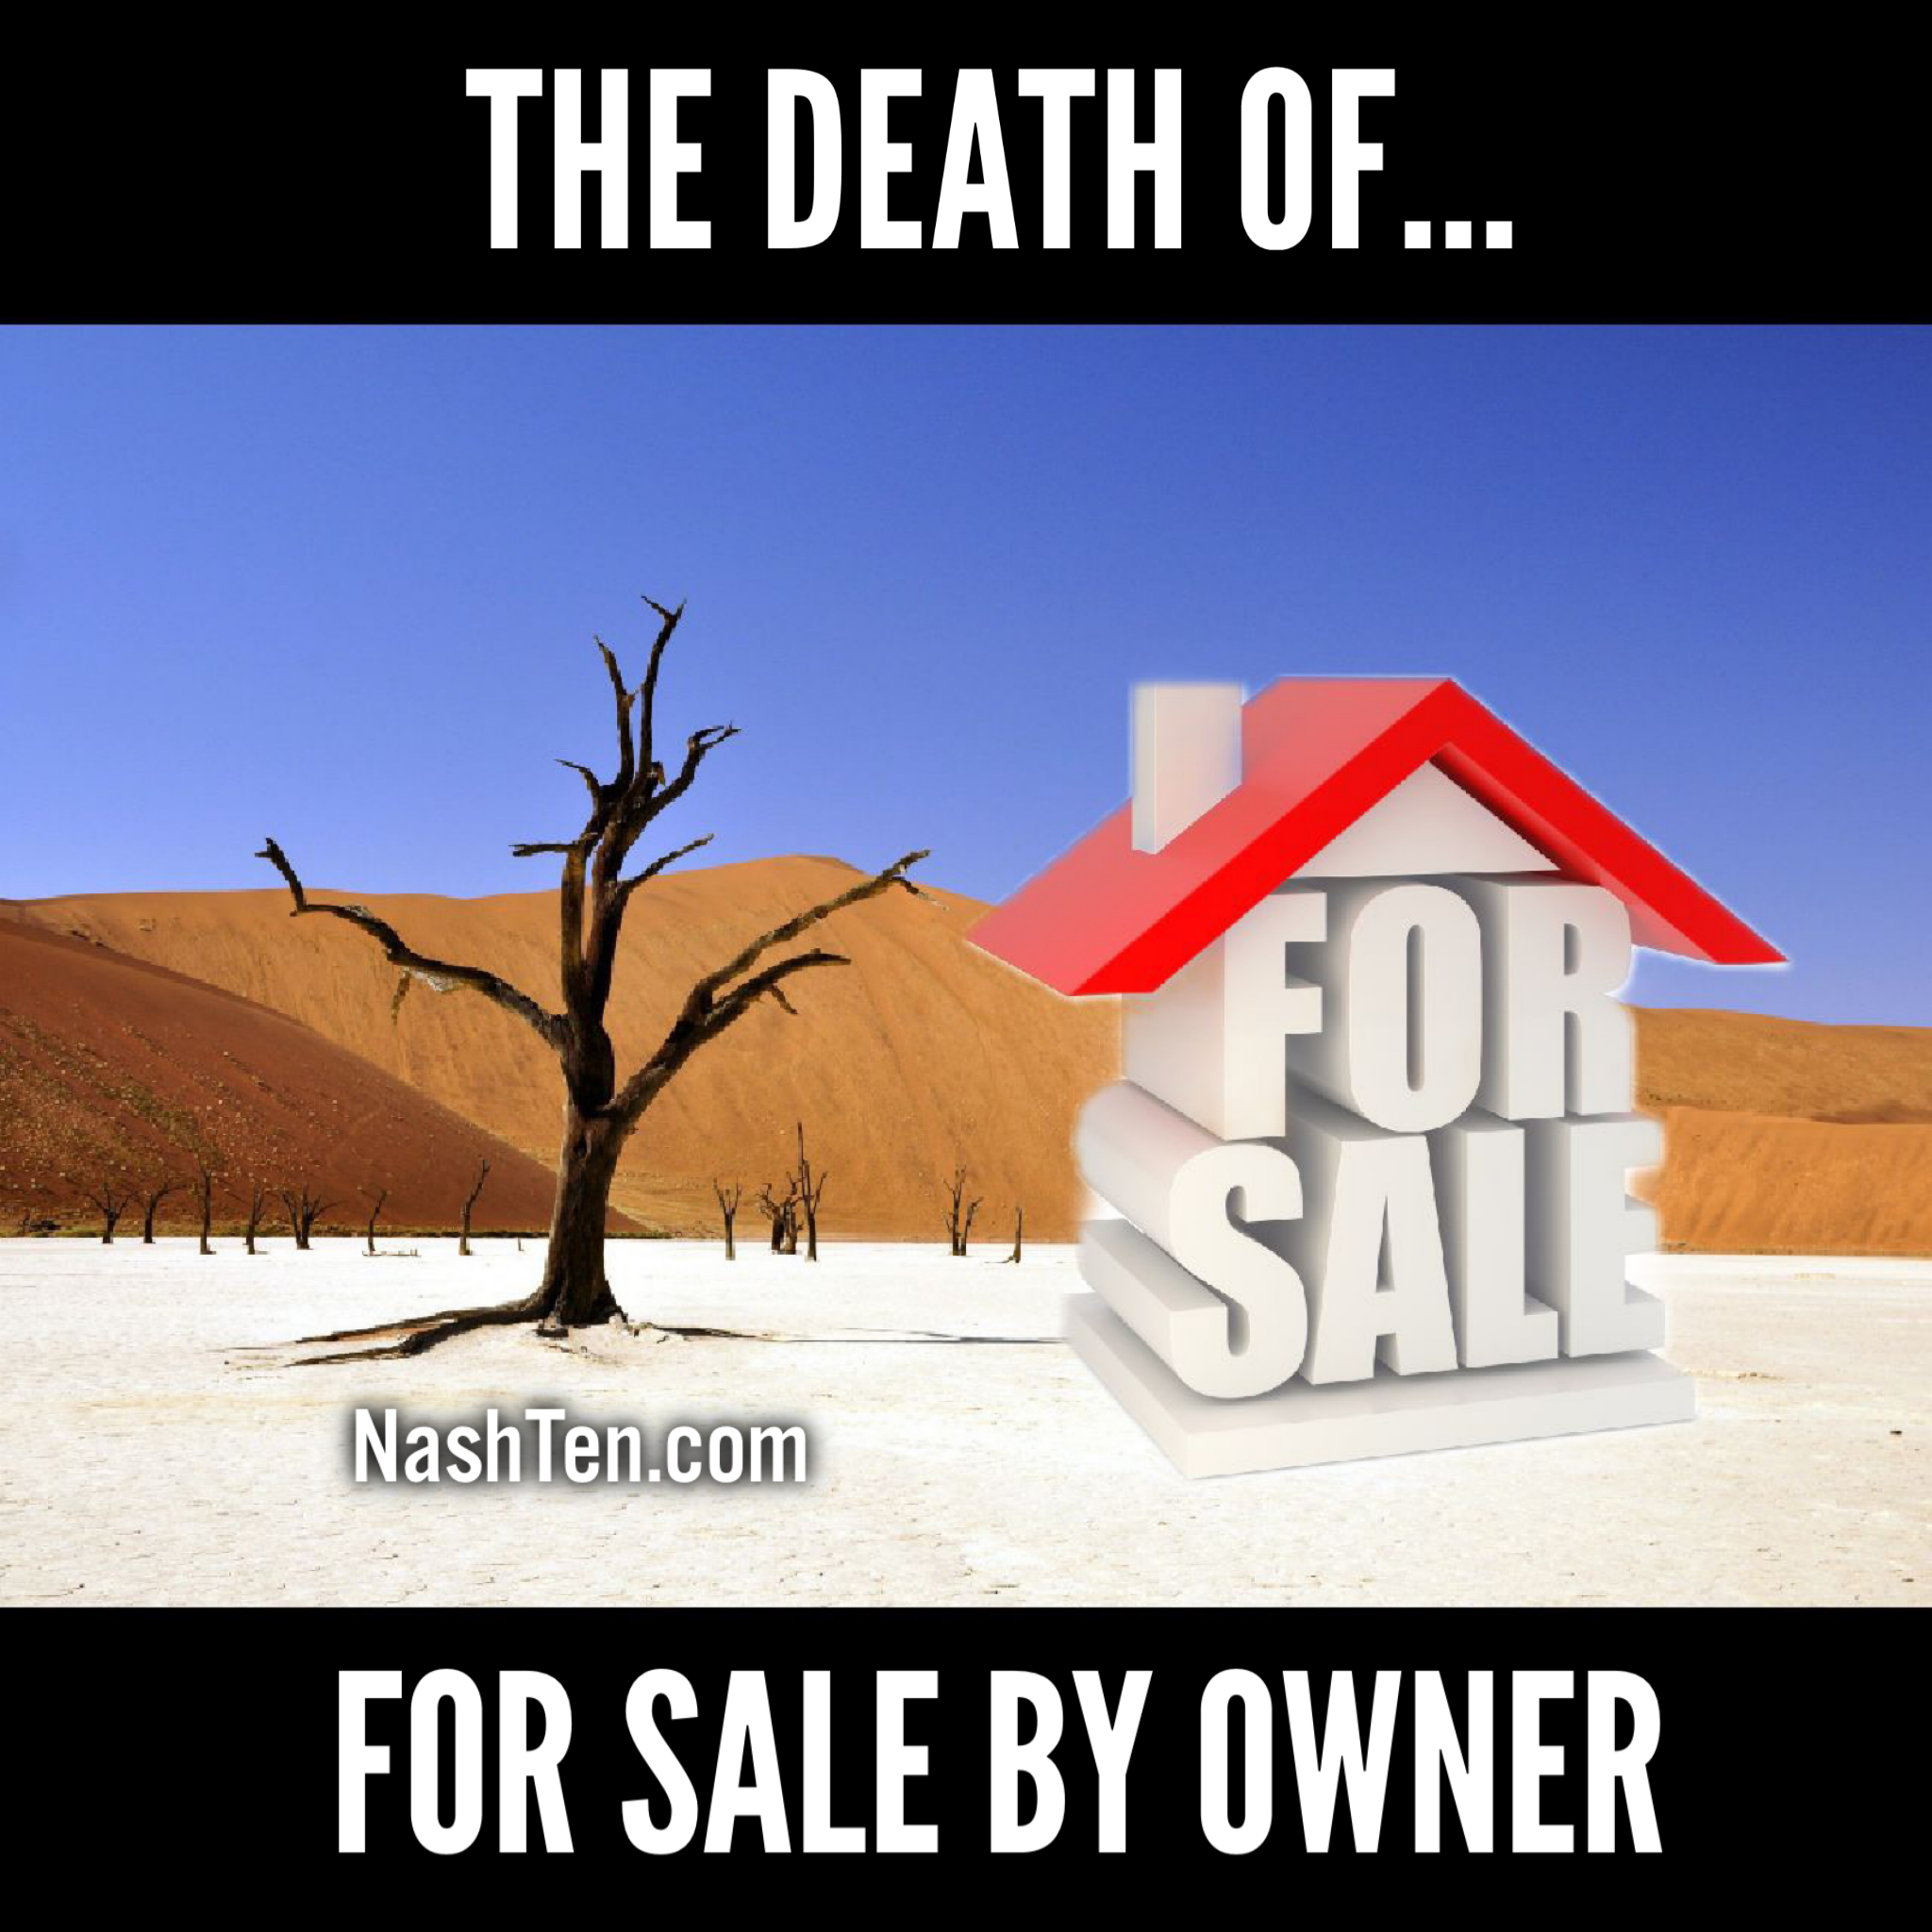 The Death of For Sale By Owner Homes